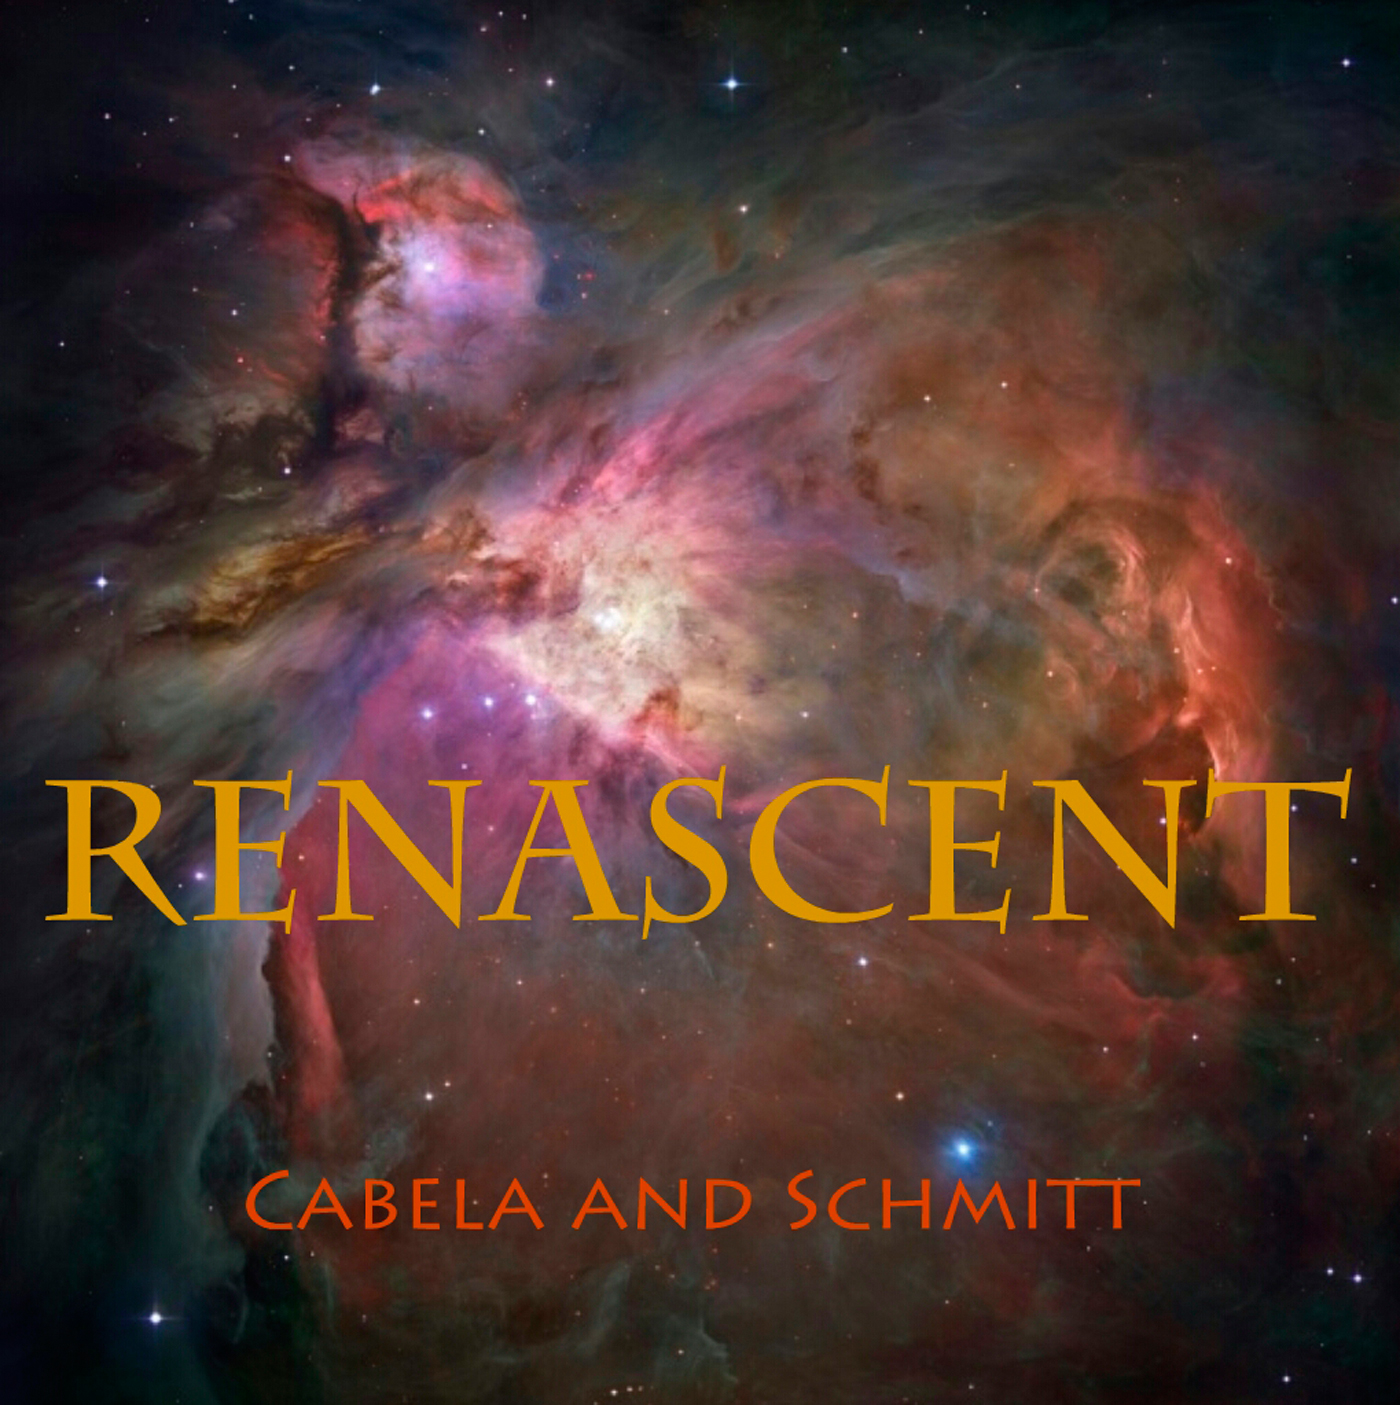 Cabela and Schmitt renascent.jpg